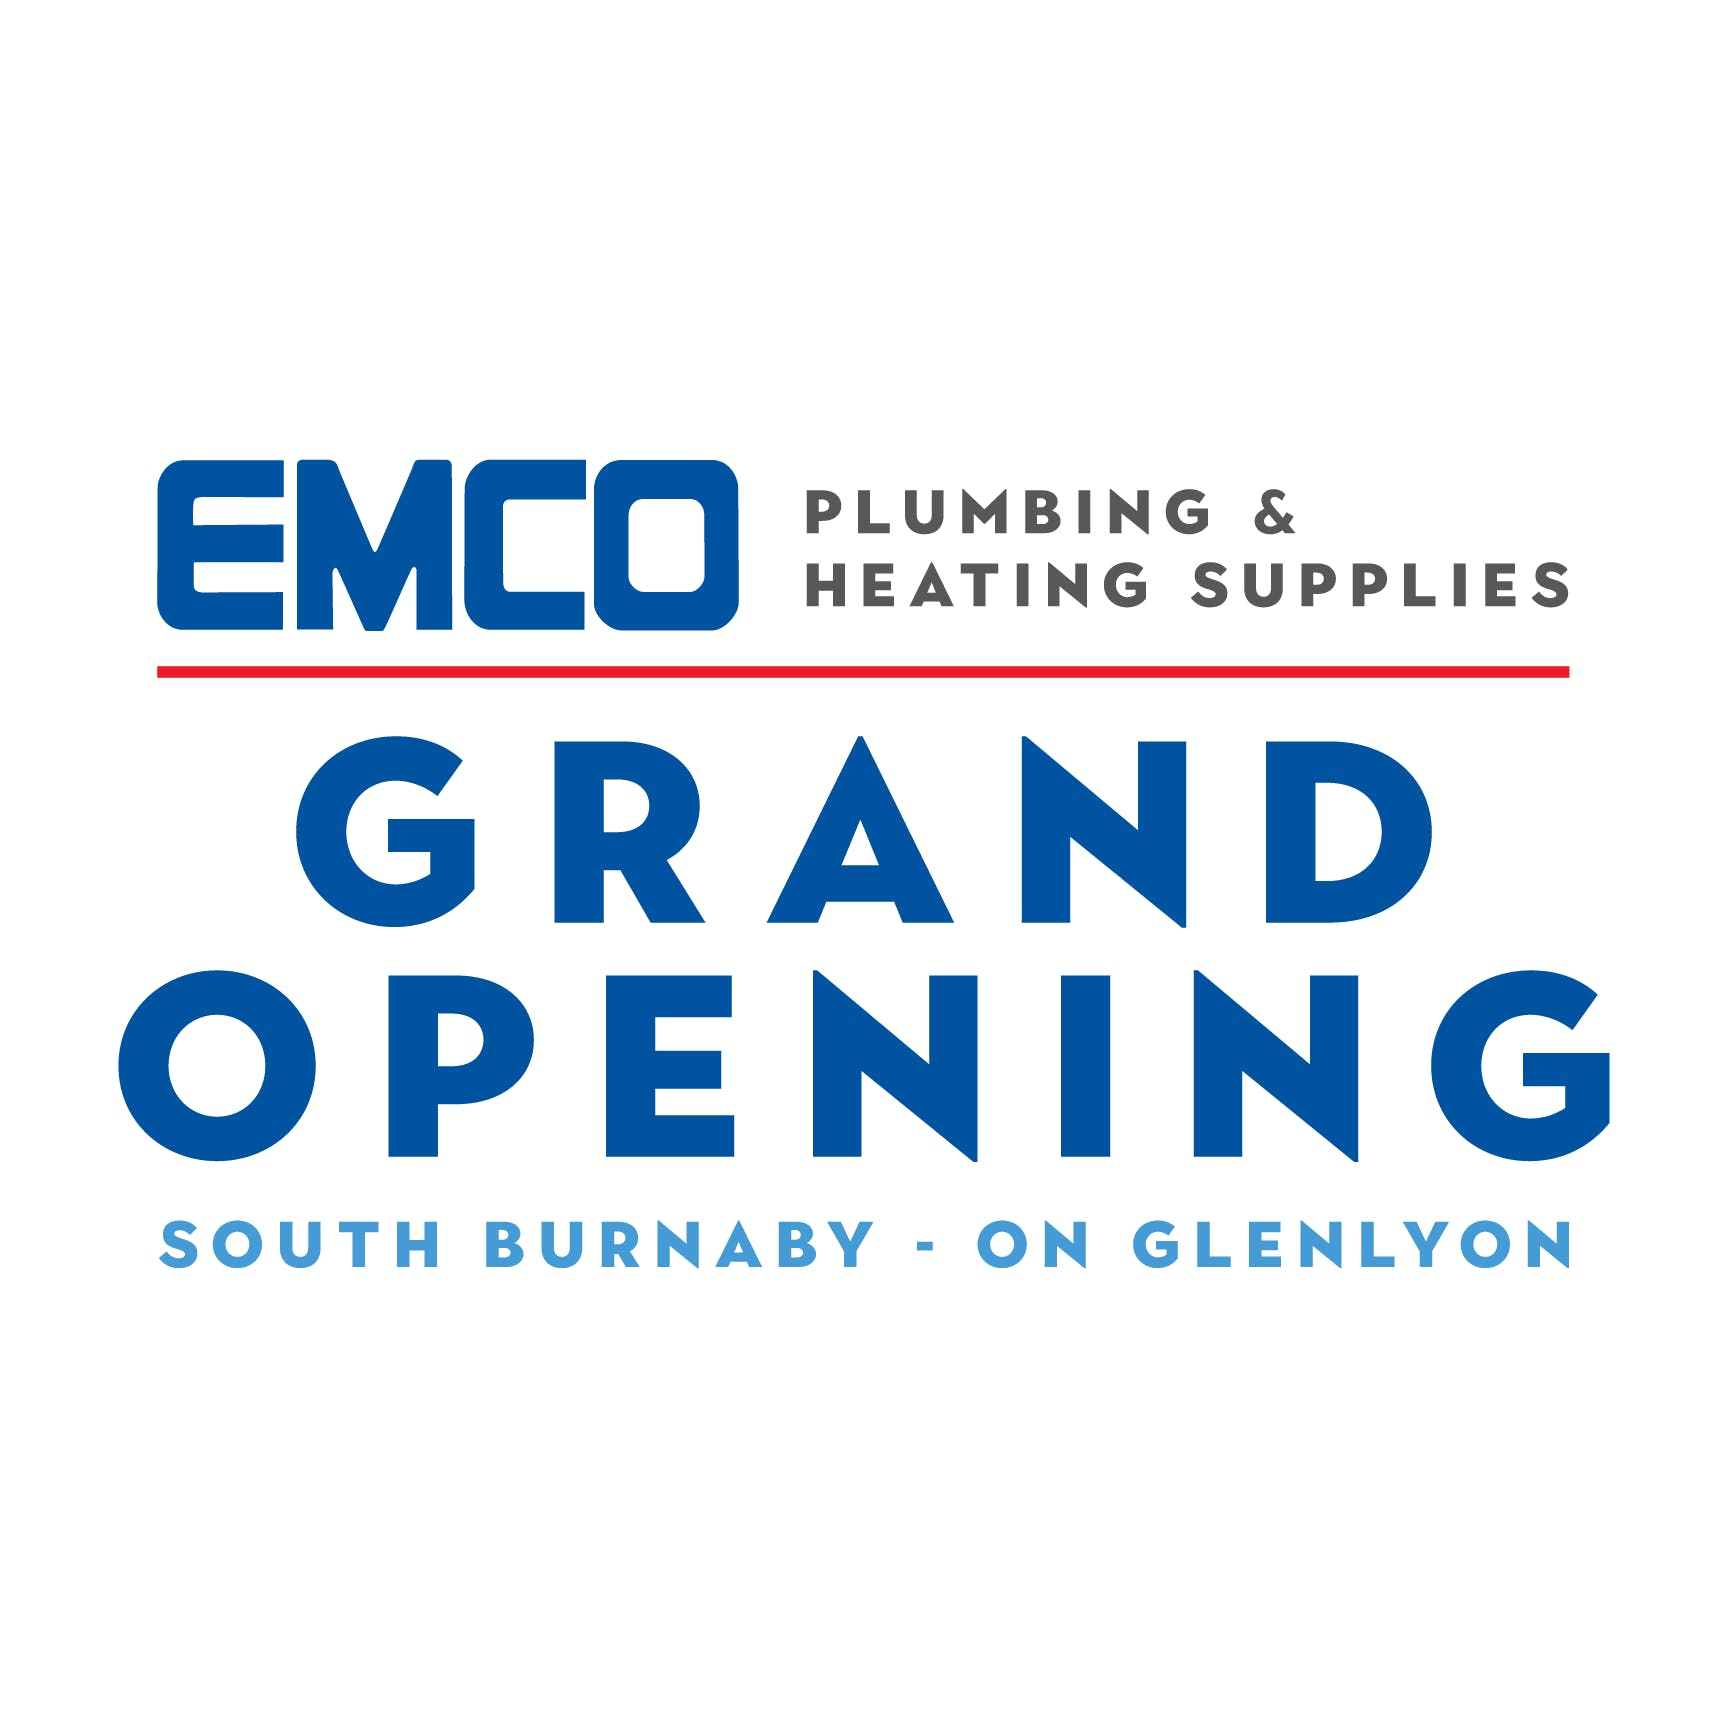 EMCO - South Burnaby Grand Opening! | Burnaby